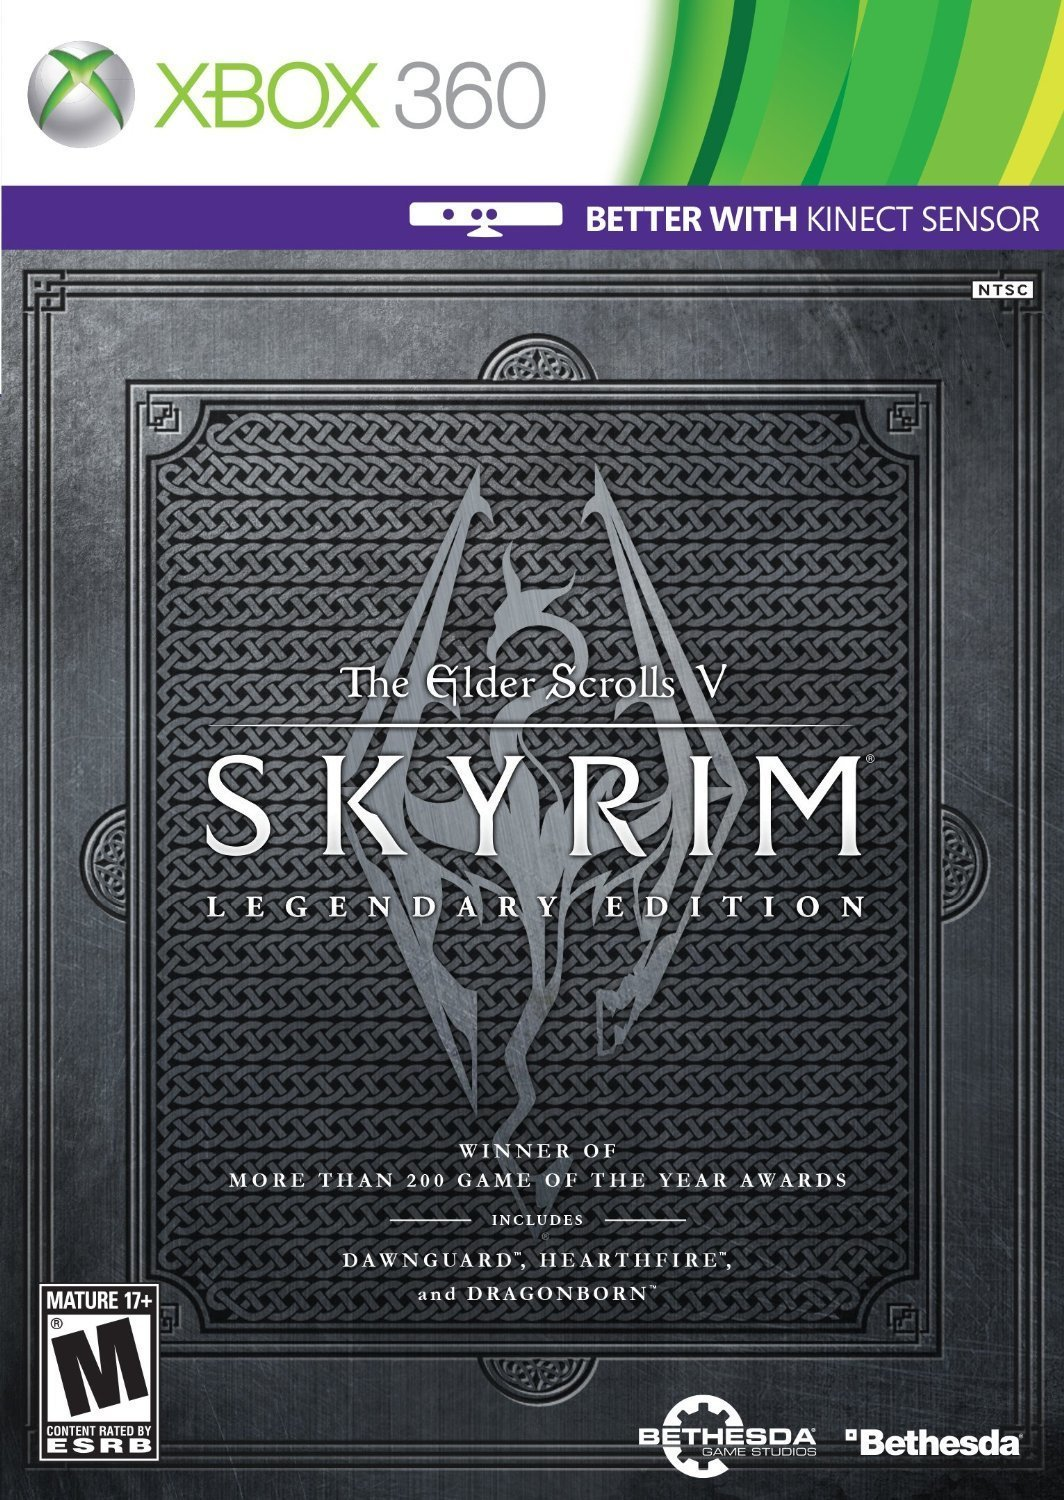 The Elder Scrolls V: Skyrim - Legendary Edition Xbox 360 Physical Game Disc US